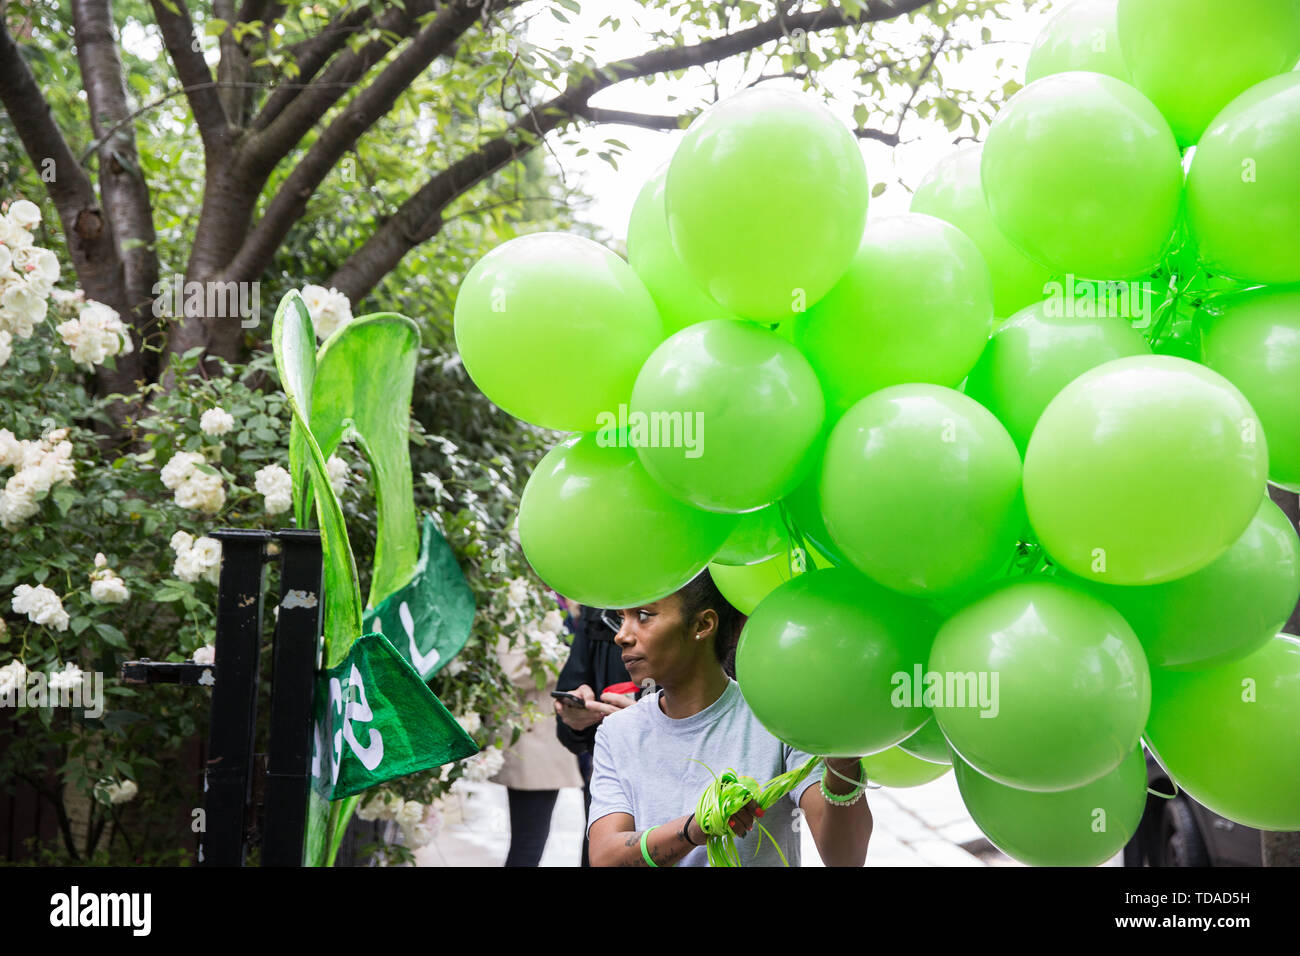 London, UK. 14 June, 2019. Green balloons are carried into a memorial service at St Helen's Church to mark the second anniversary of the Grenfell Tower fire on 14th June 2017 in which at least 72 people died and over 70 were injured. Credit: Mark Kerrison/Alamy Live News - Stock Image